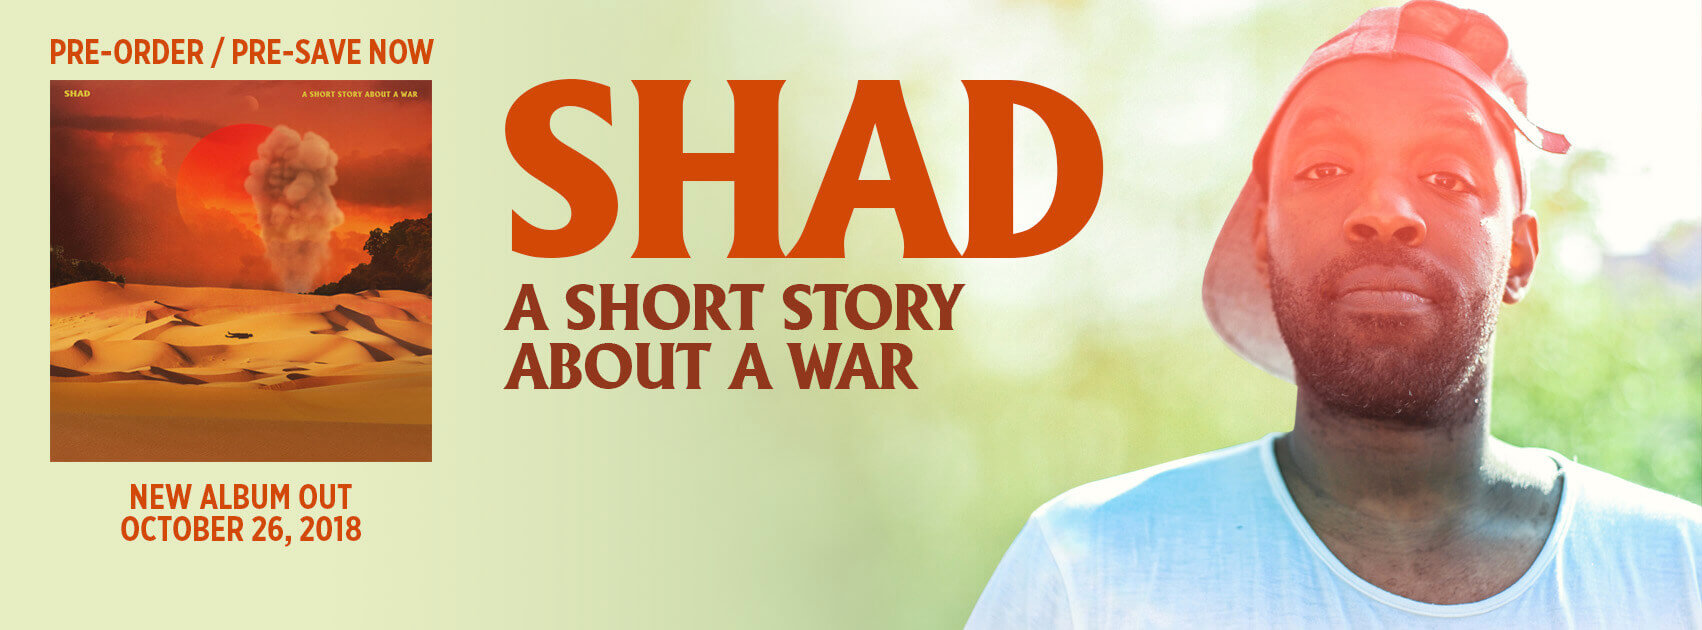 Shad A Short Story About A War